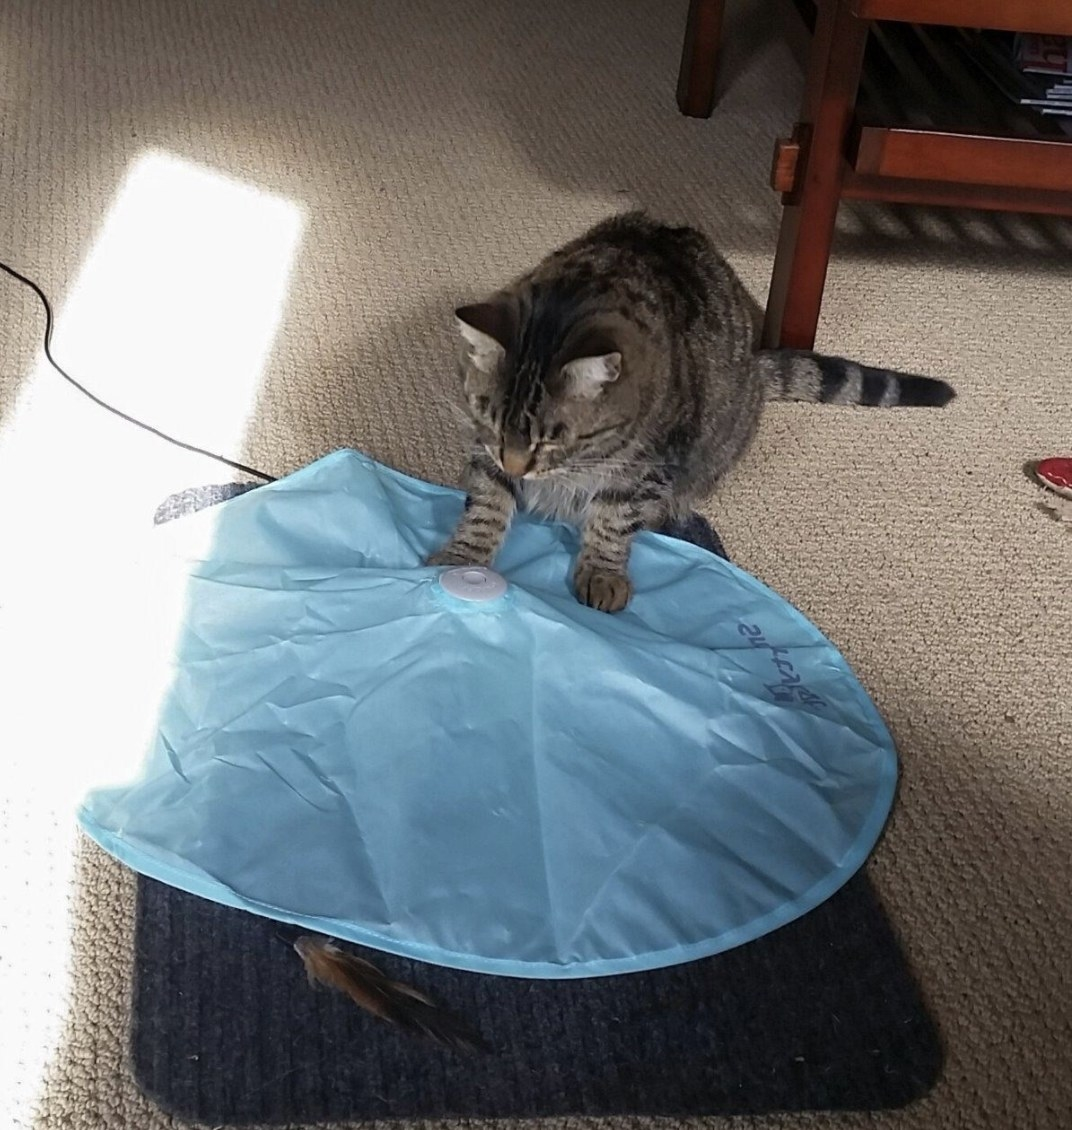 A cat playing with a concealed motion toy